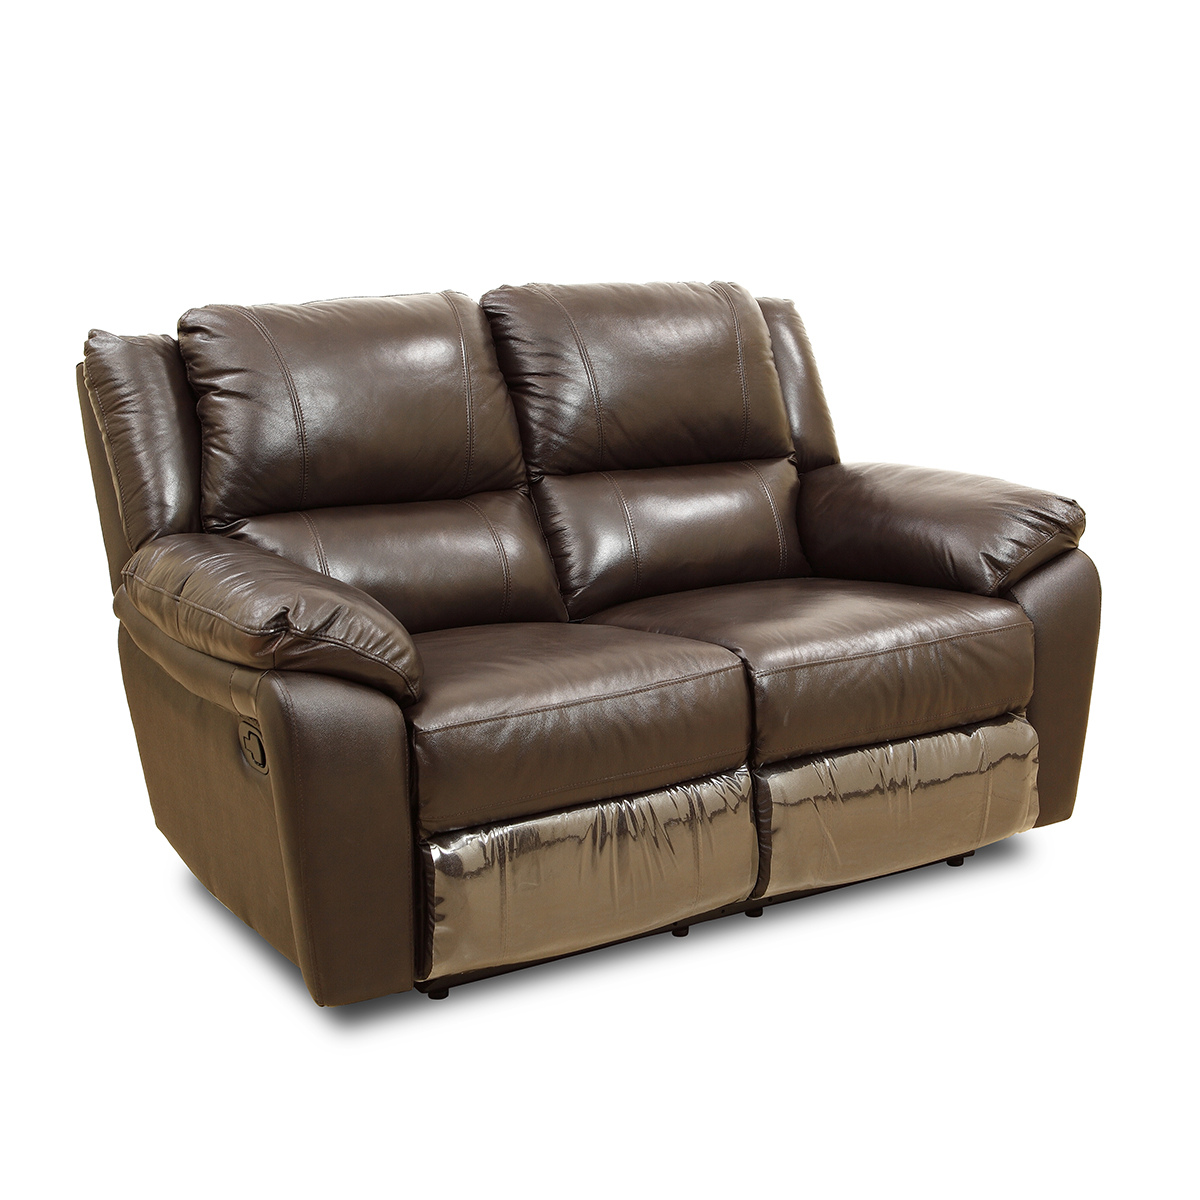 Alexander Half Leather Two Seater Recliner in Brown Colour by HomeTown